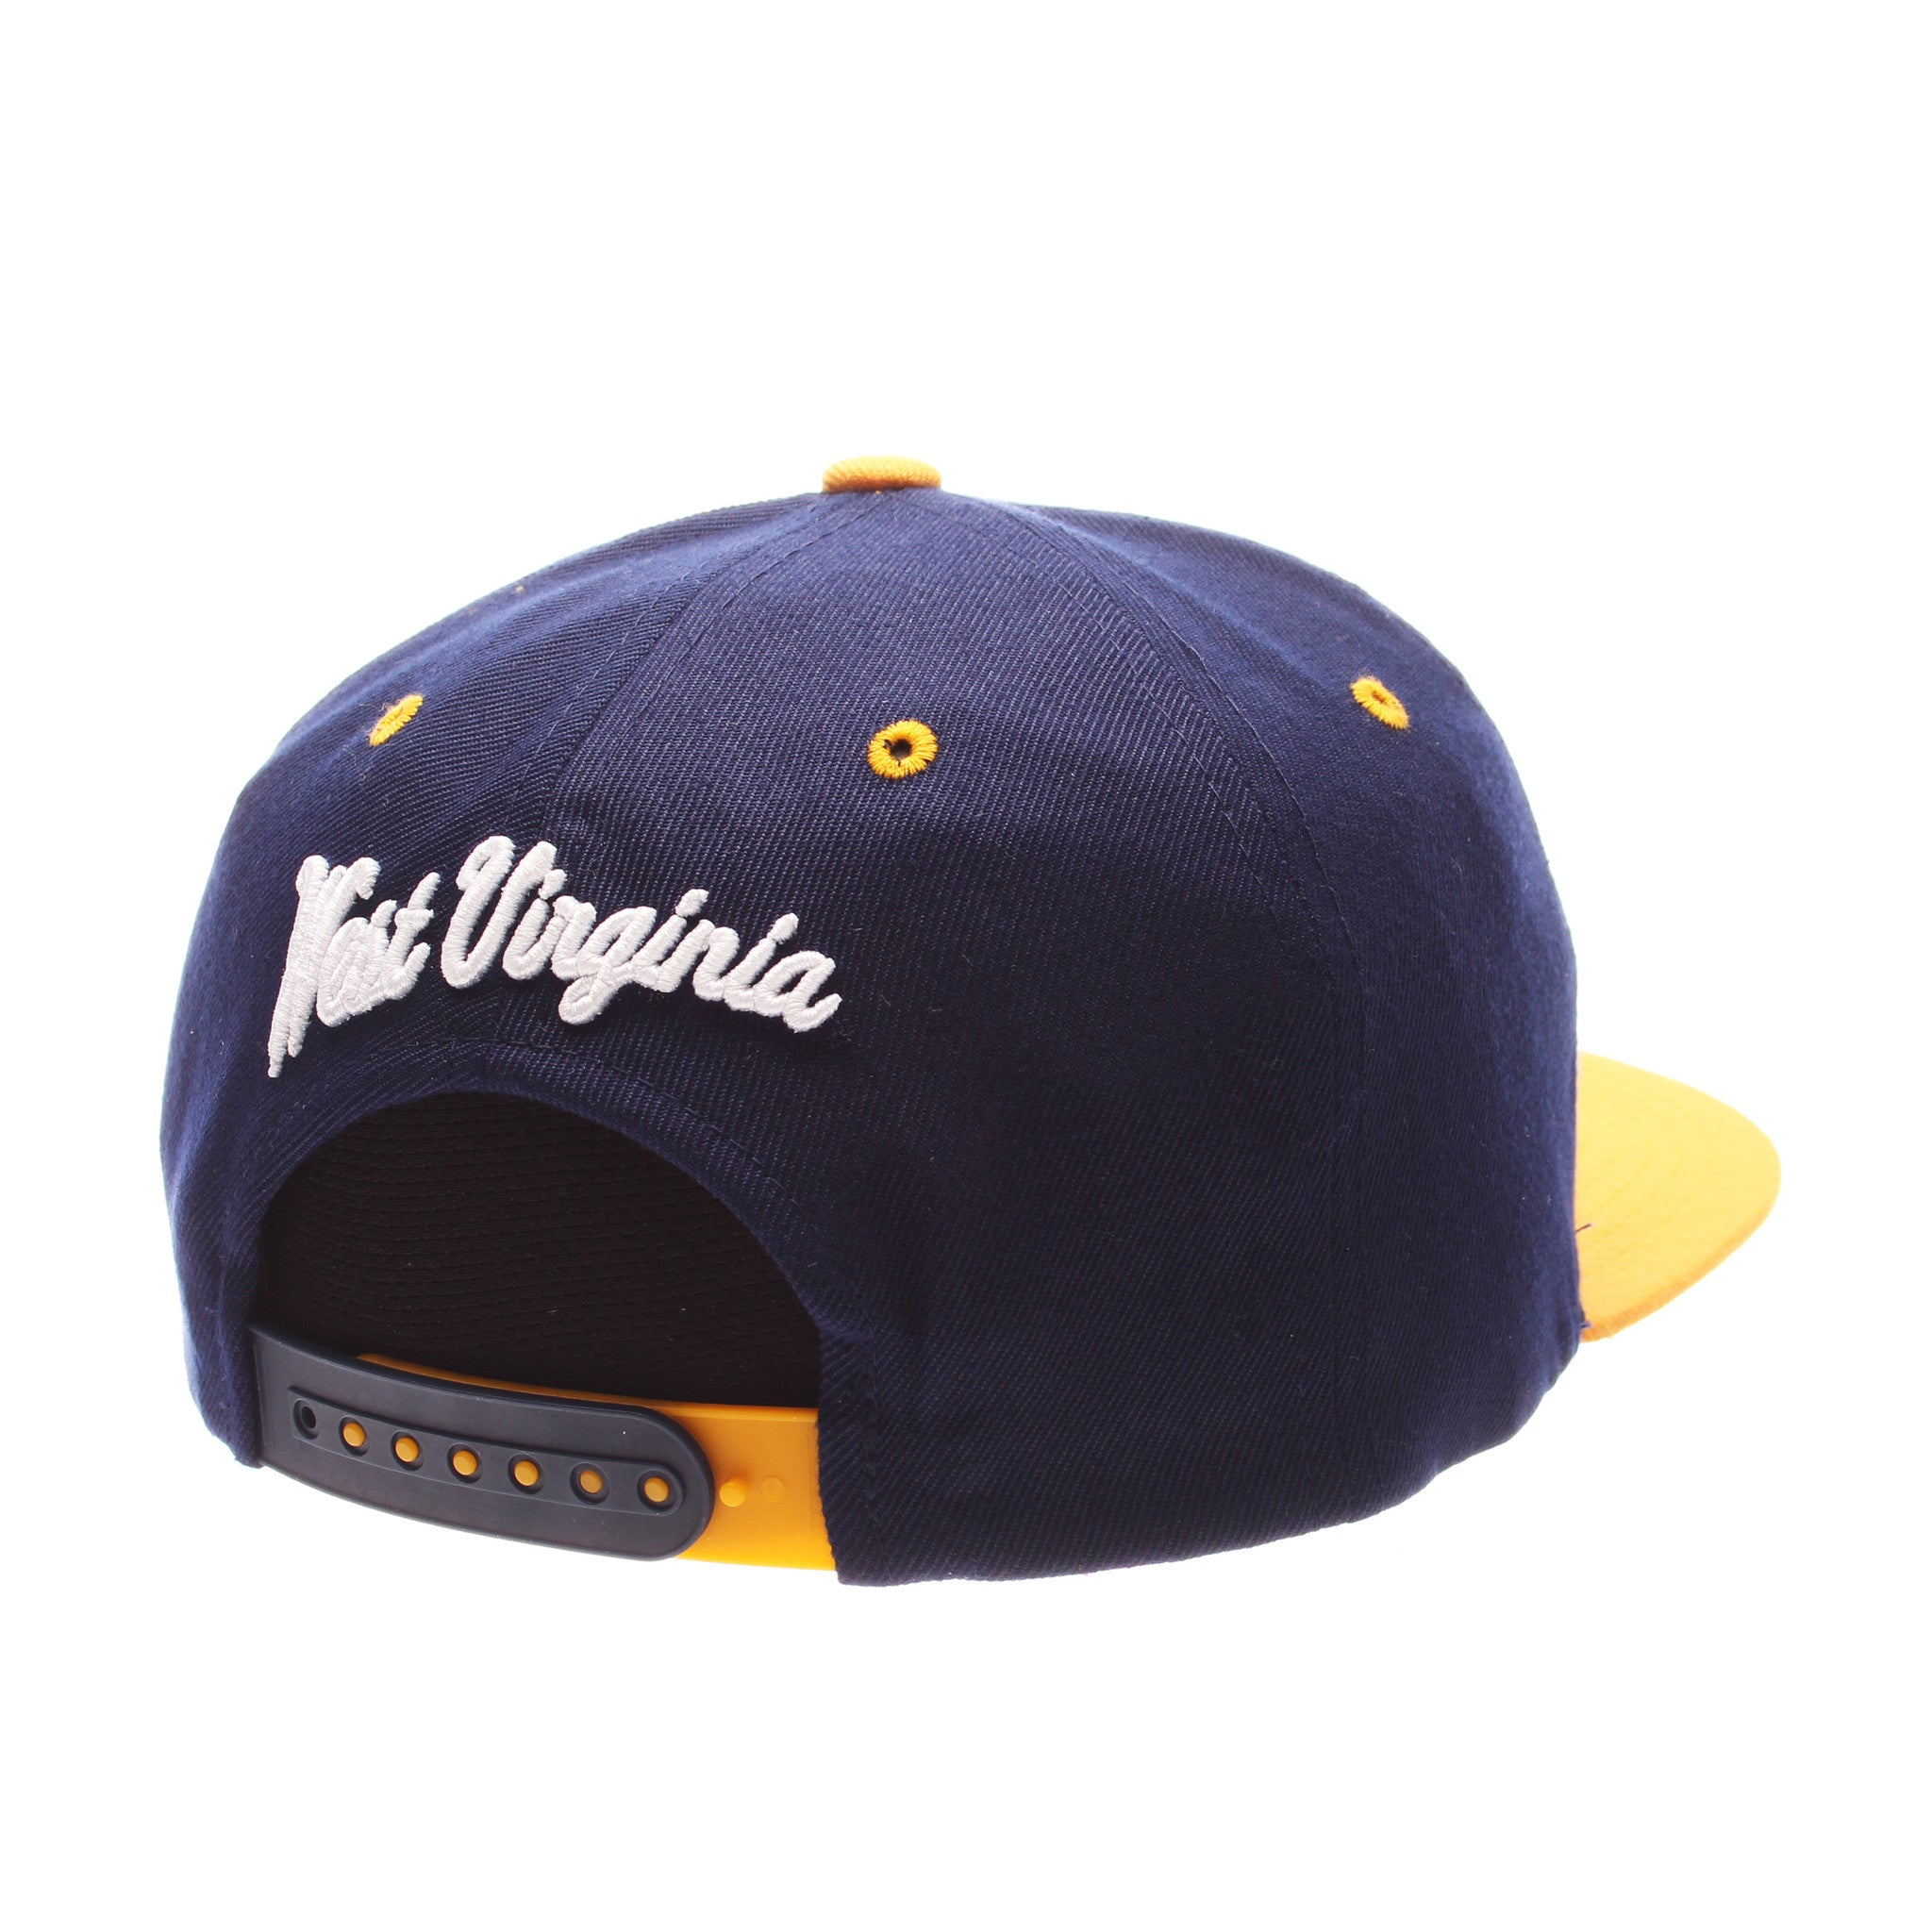 West Virginia Z11 32/5 (High) (WV) Navy Zwool Adjustable hats by Zephyr